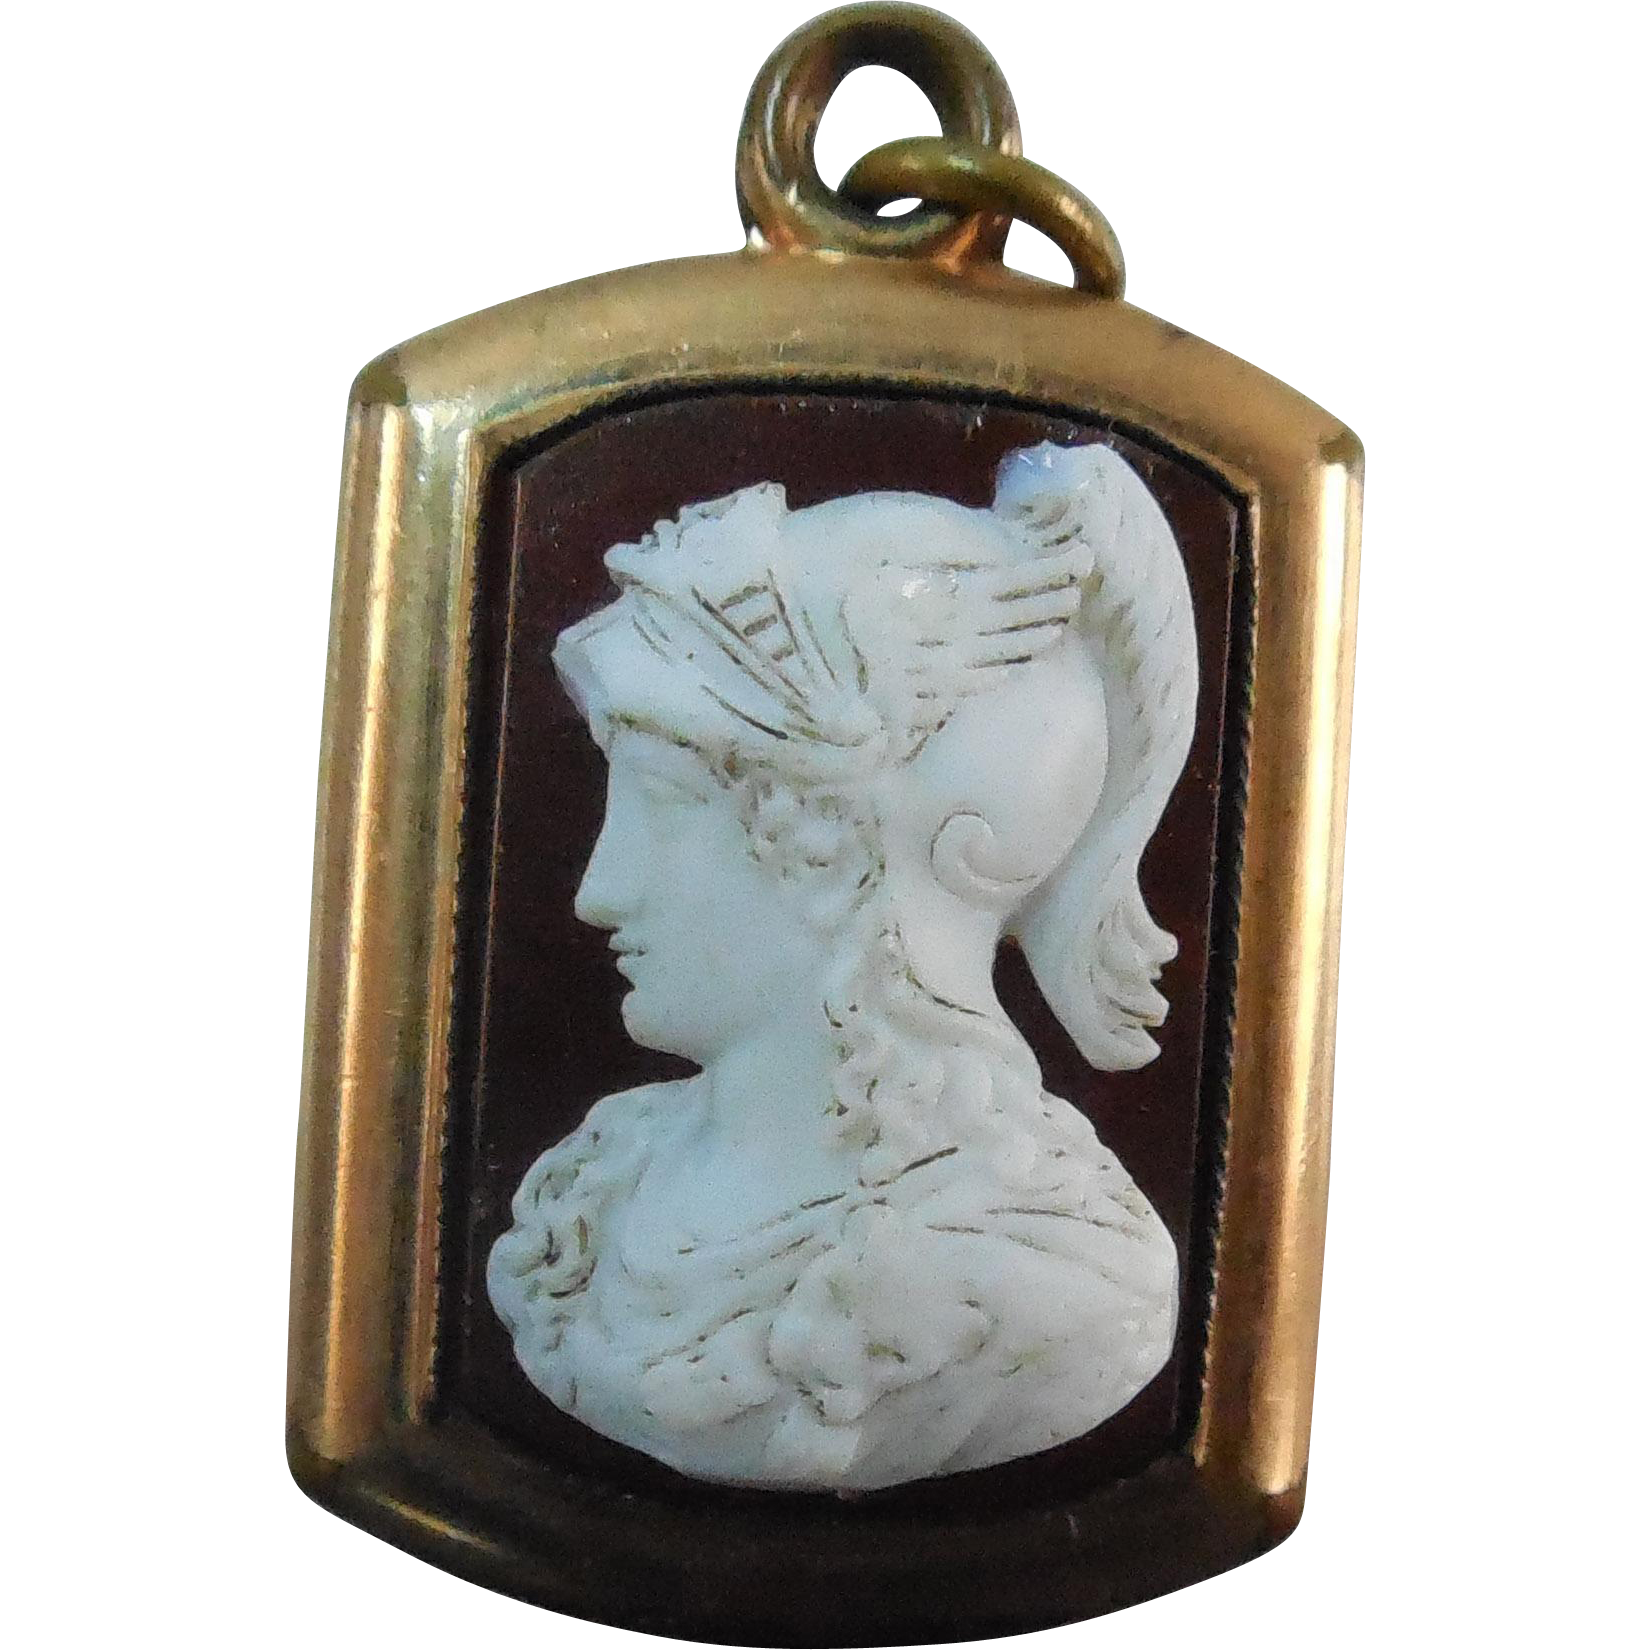 Antique Pendant or Fob Hermes or Mercury Cameo - Gold Filled Victorian Era